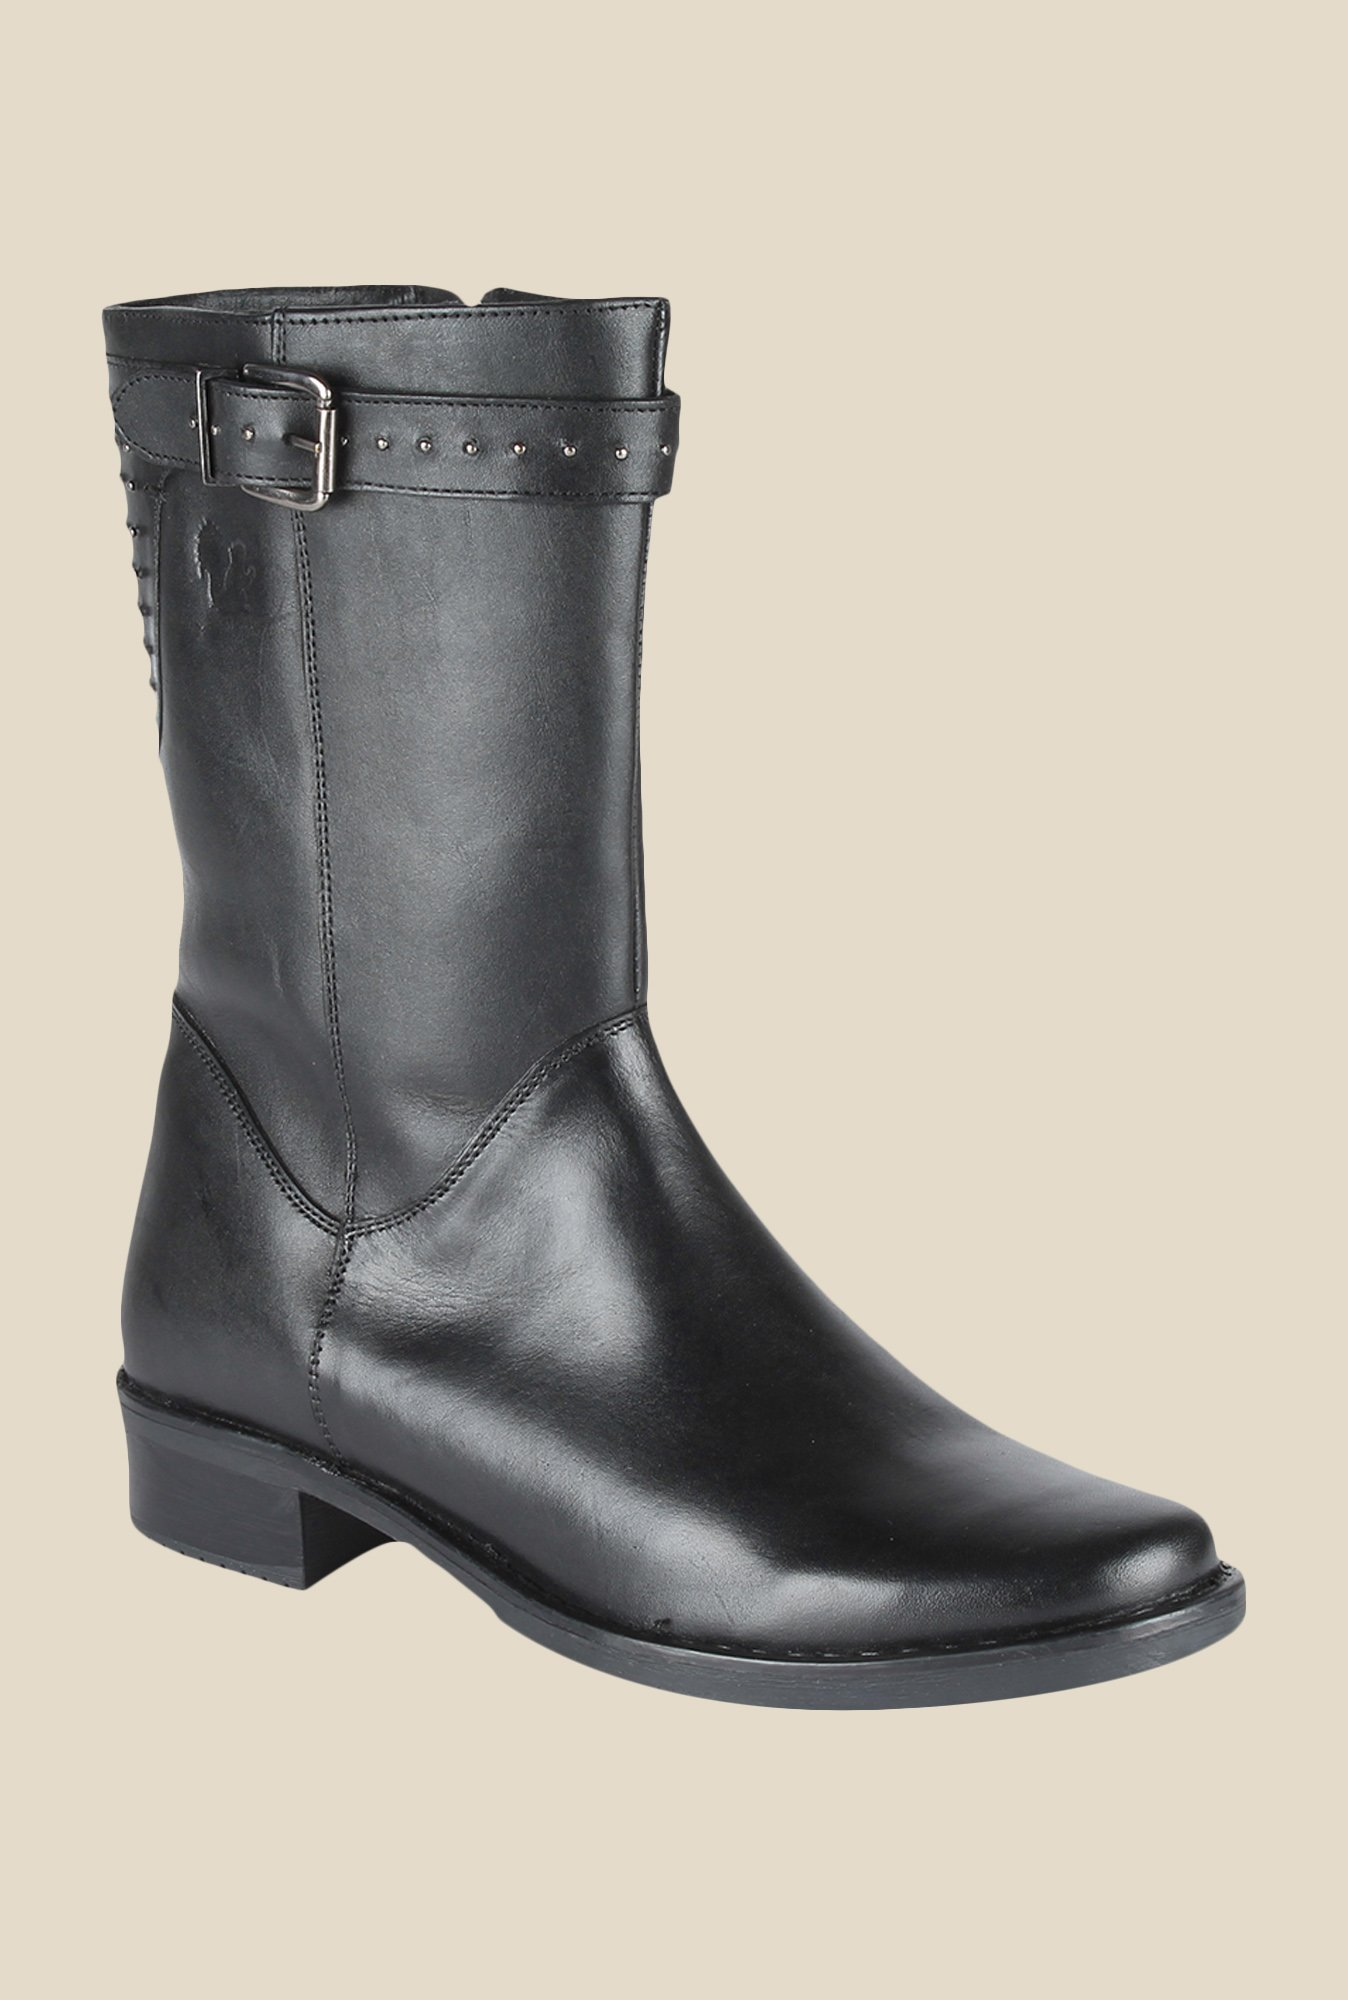 Salt 'n' Pepper Amonia Black Casual Boots